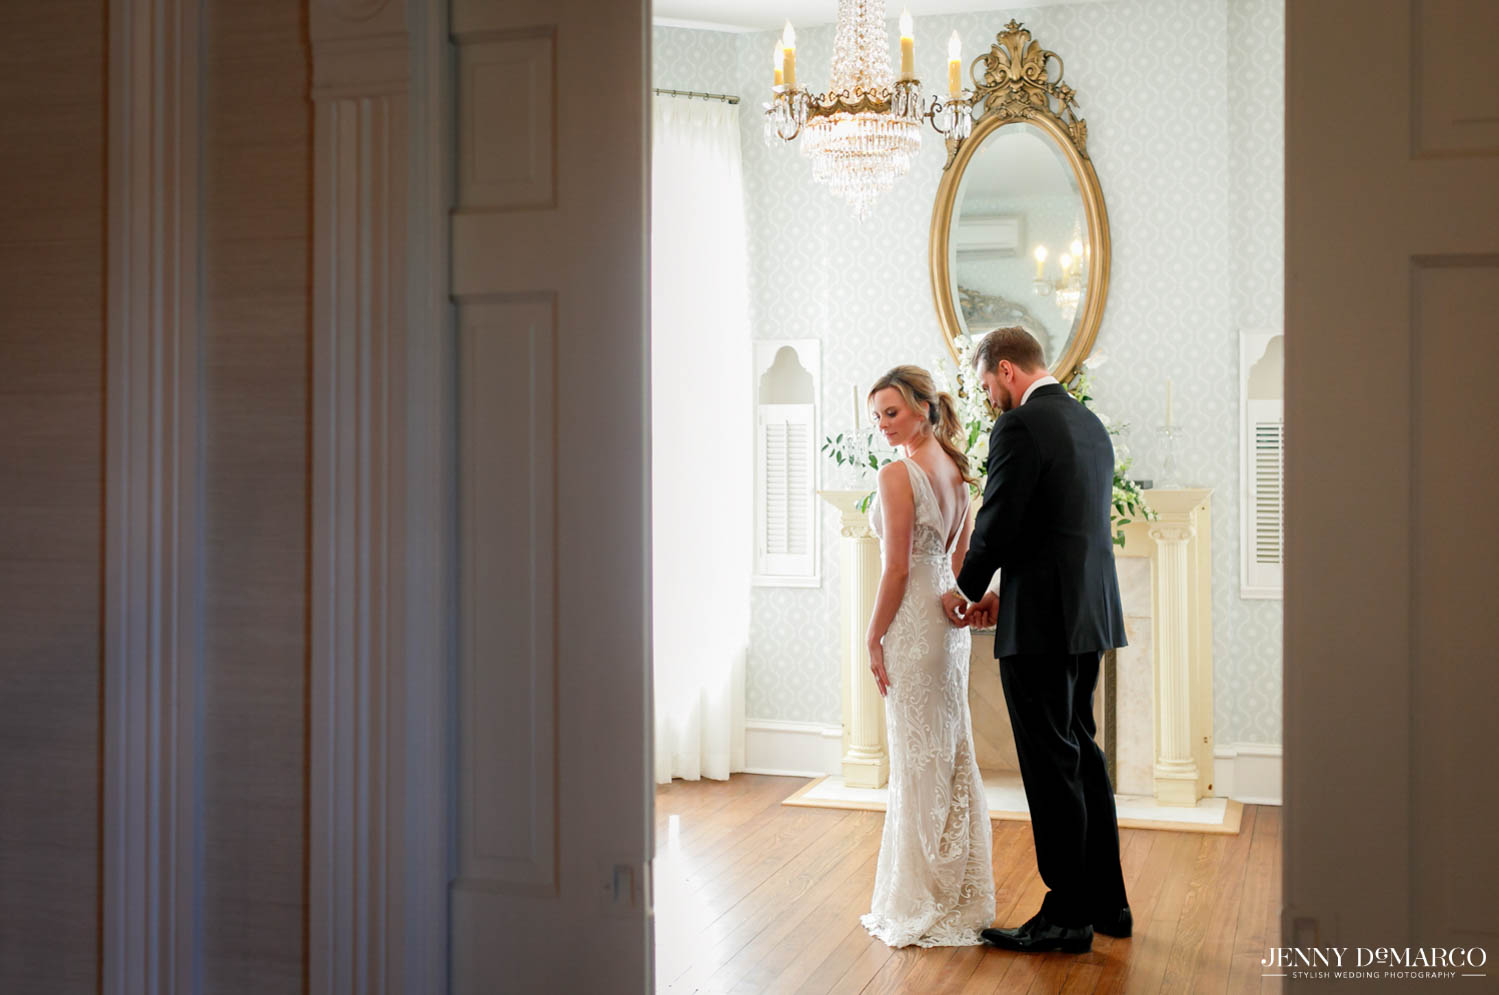 groom zipping the bride into her dress